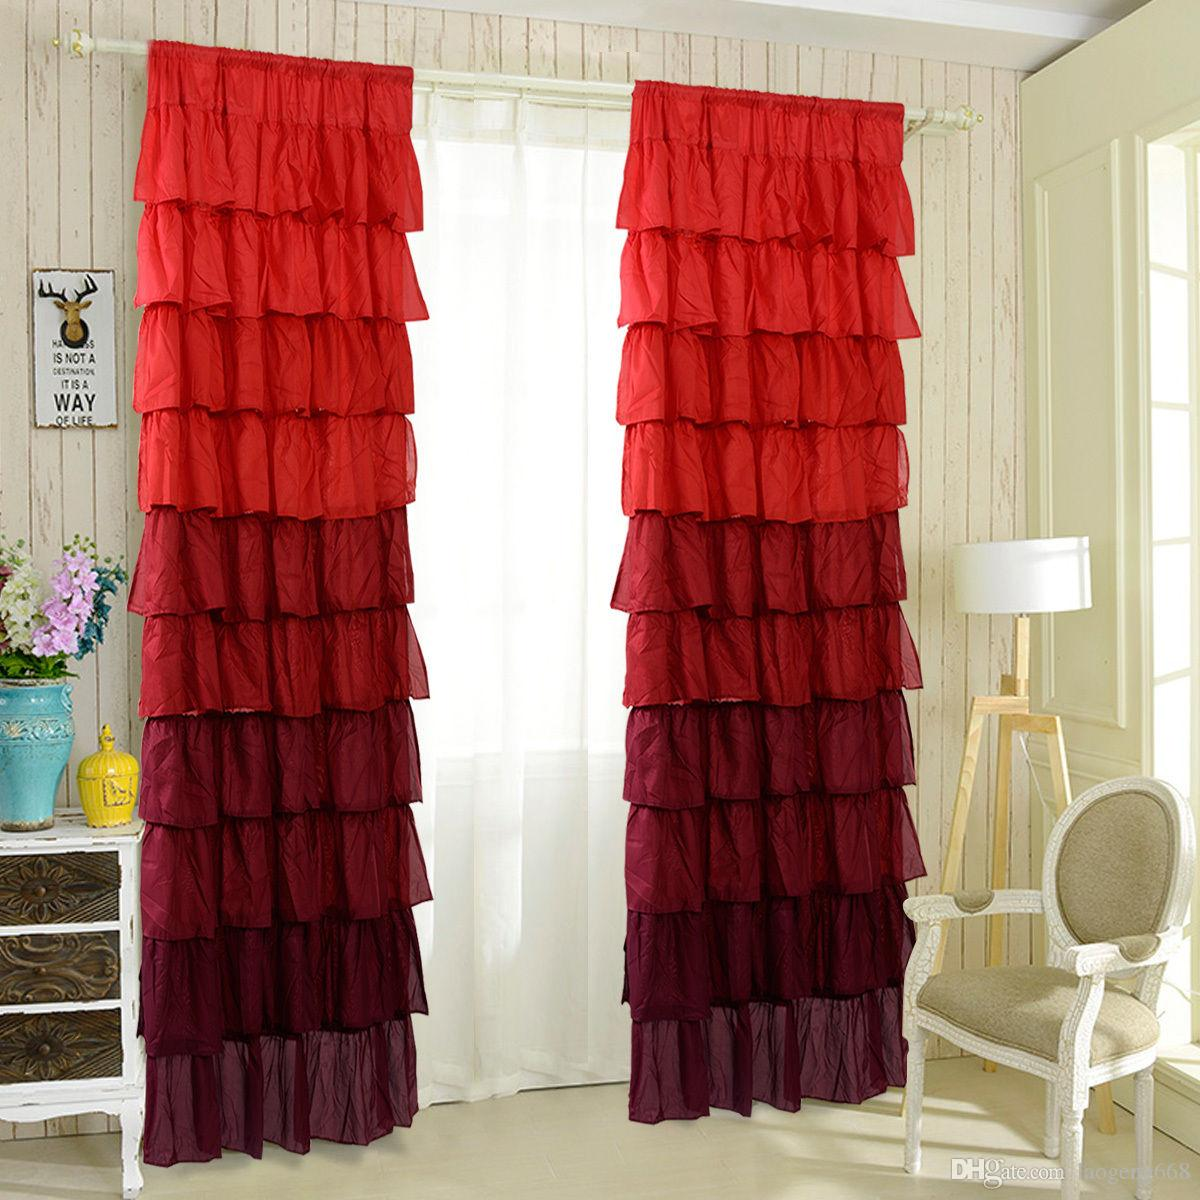 walmart with drapery patterns best drapes pinterest images on valances furniture valance curtain window